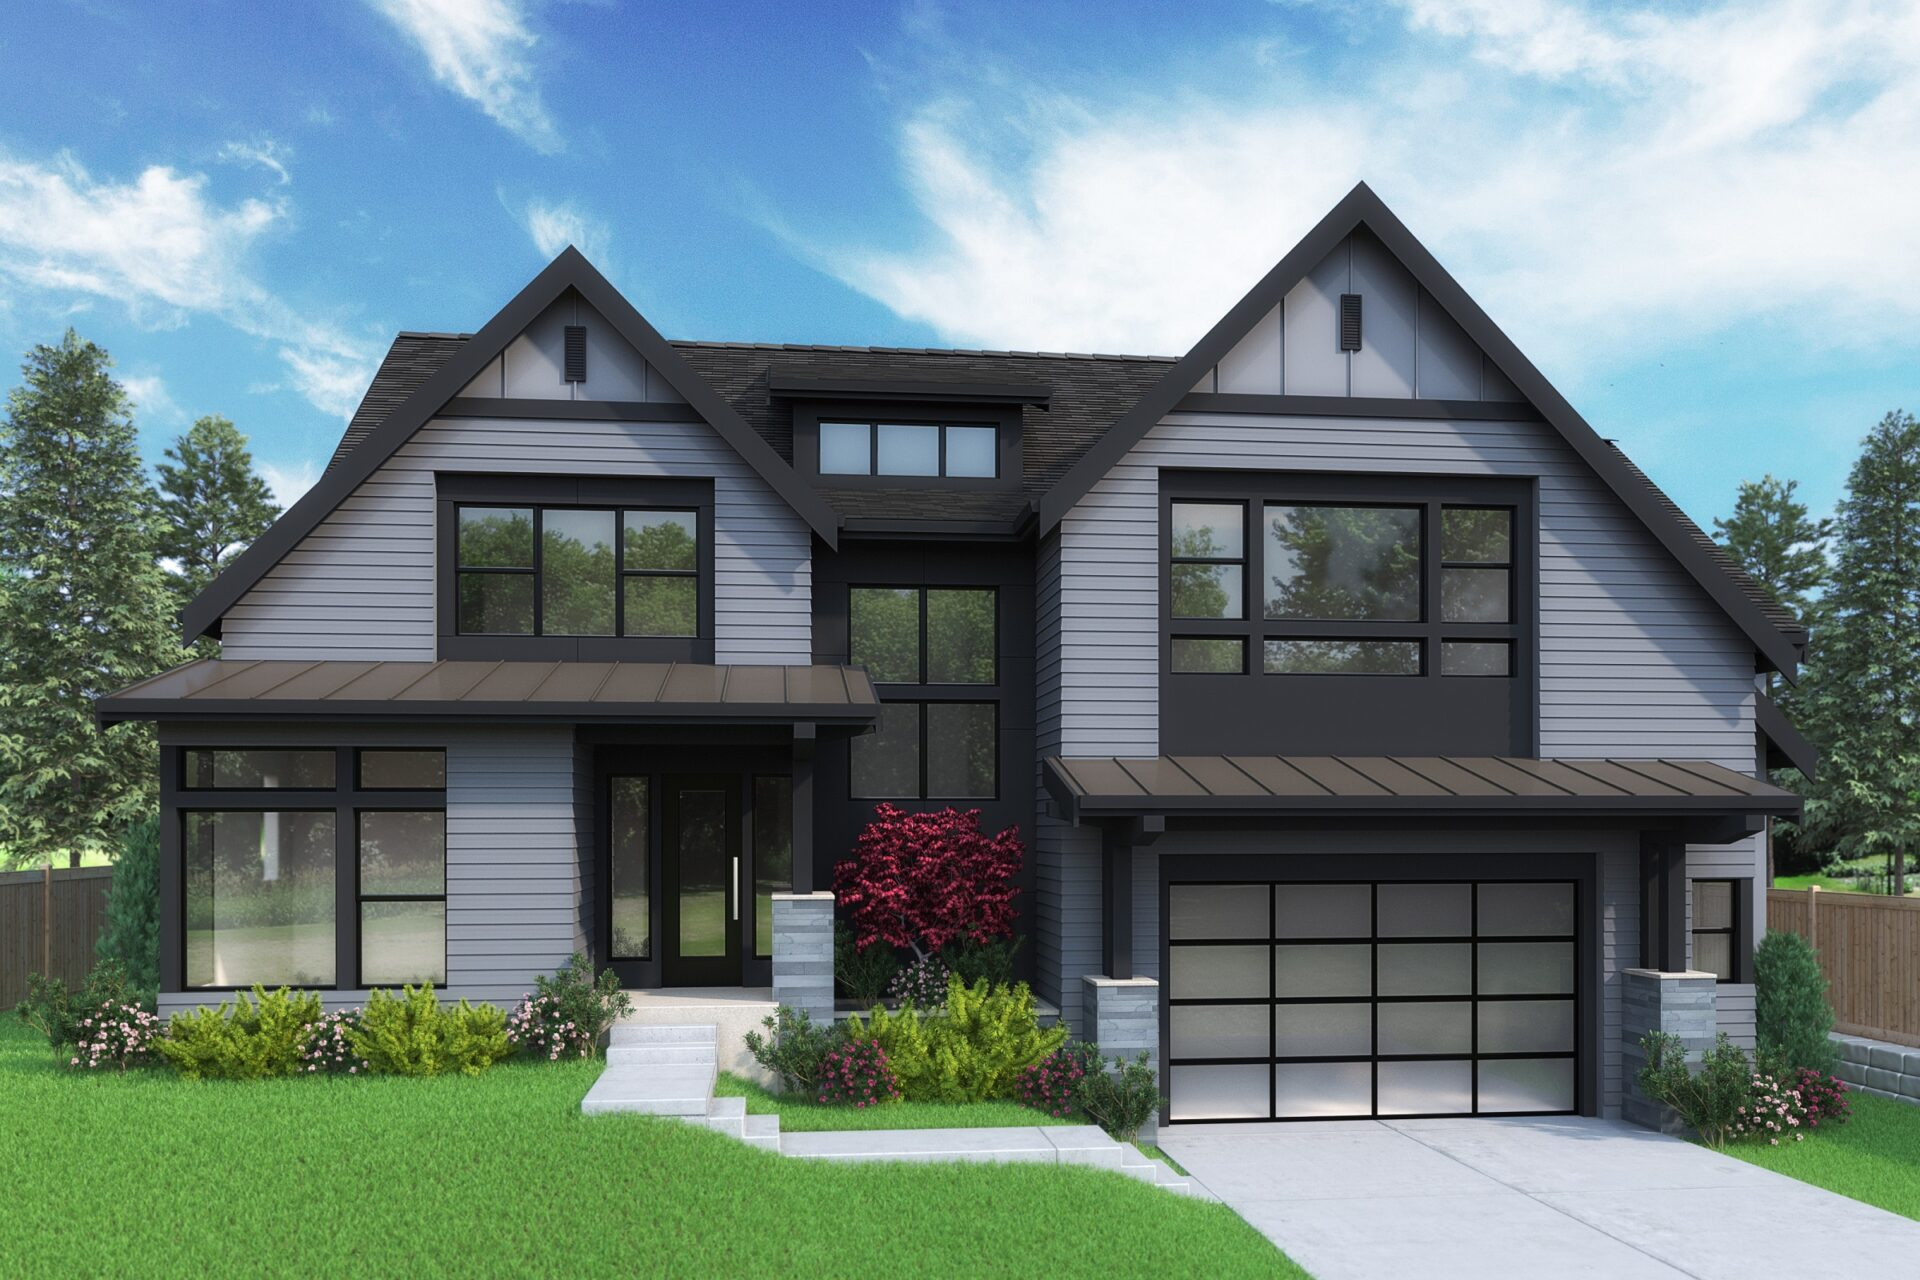 View our new luxury home construction on 16713 SE 2nd Pl, in Bellevue, WA from MN Custom Homes